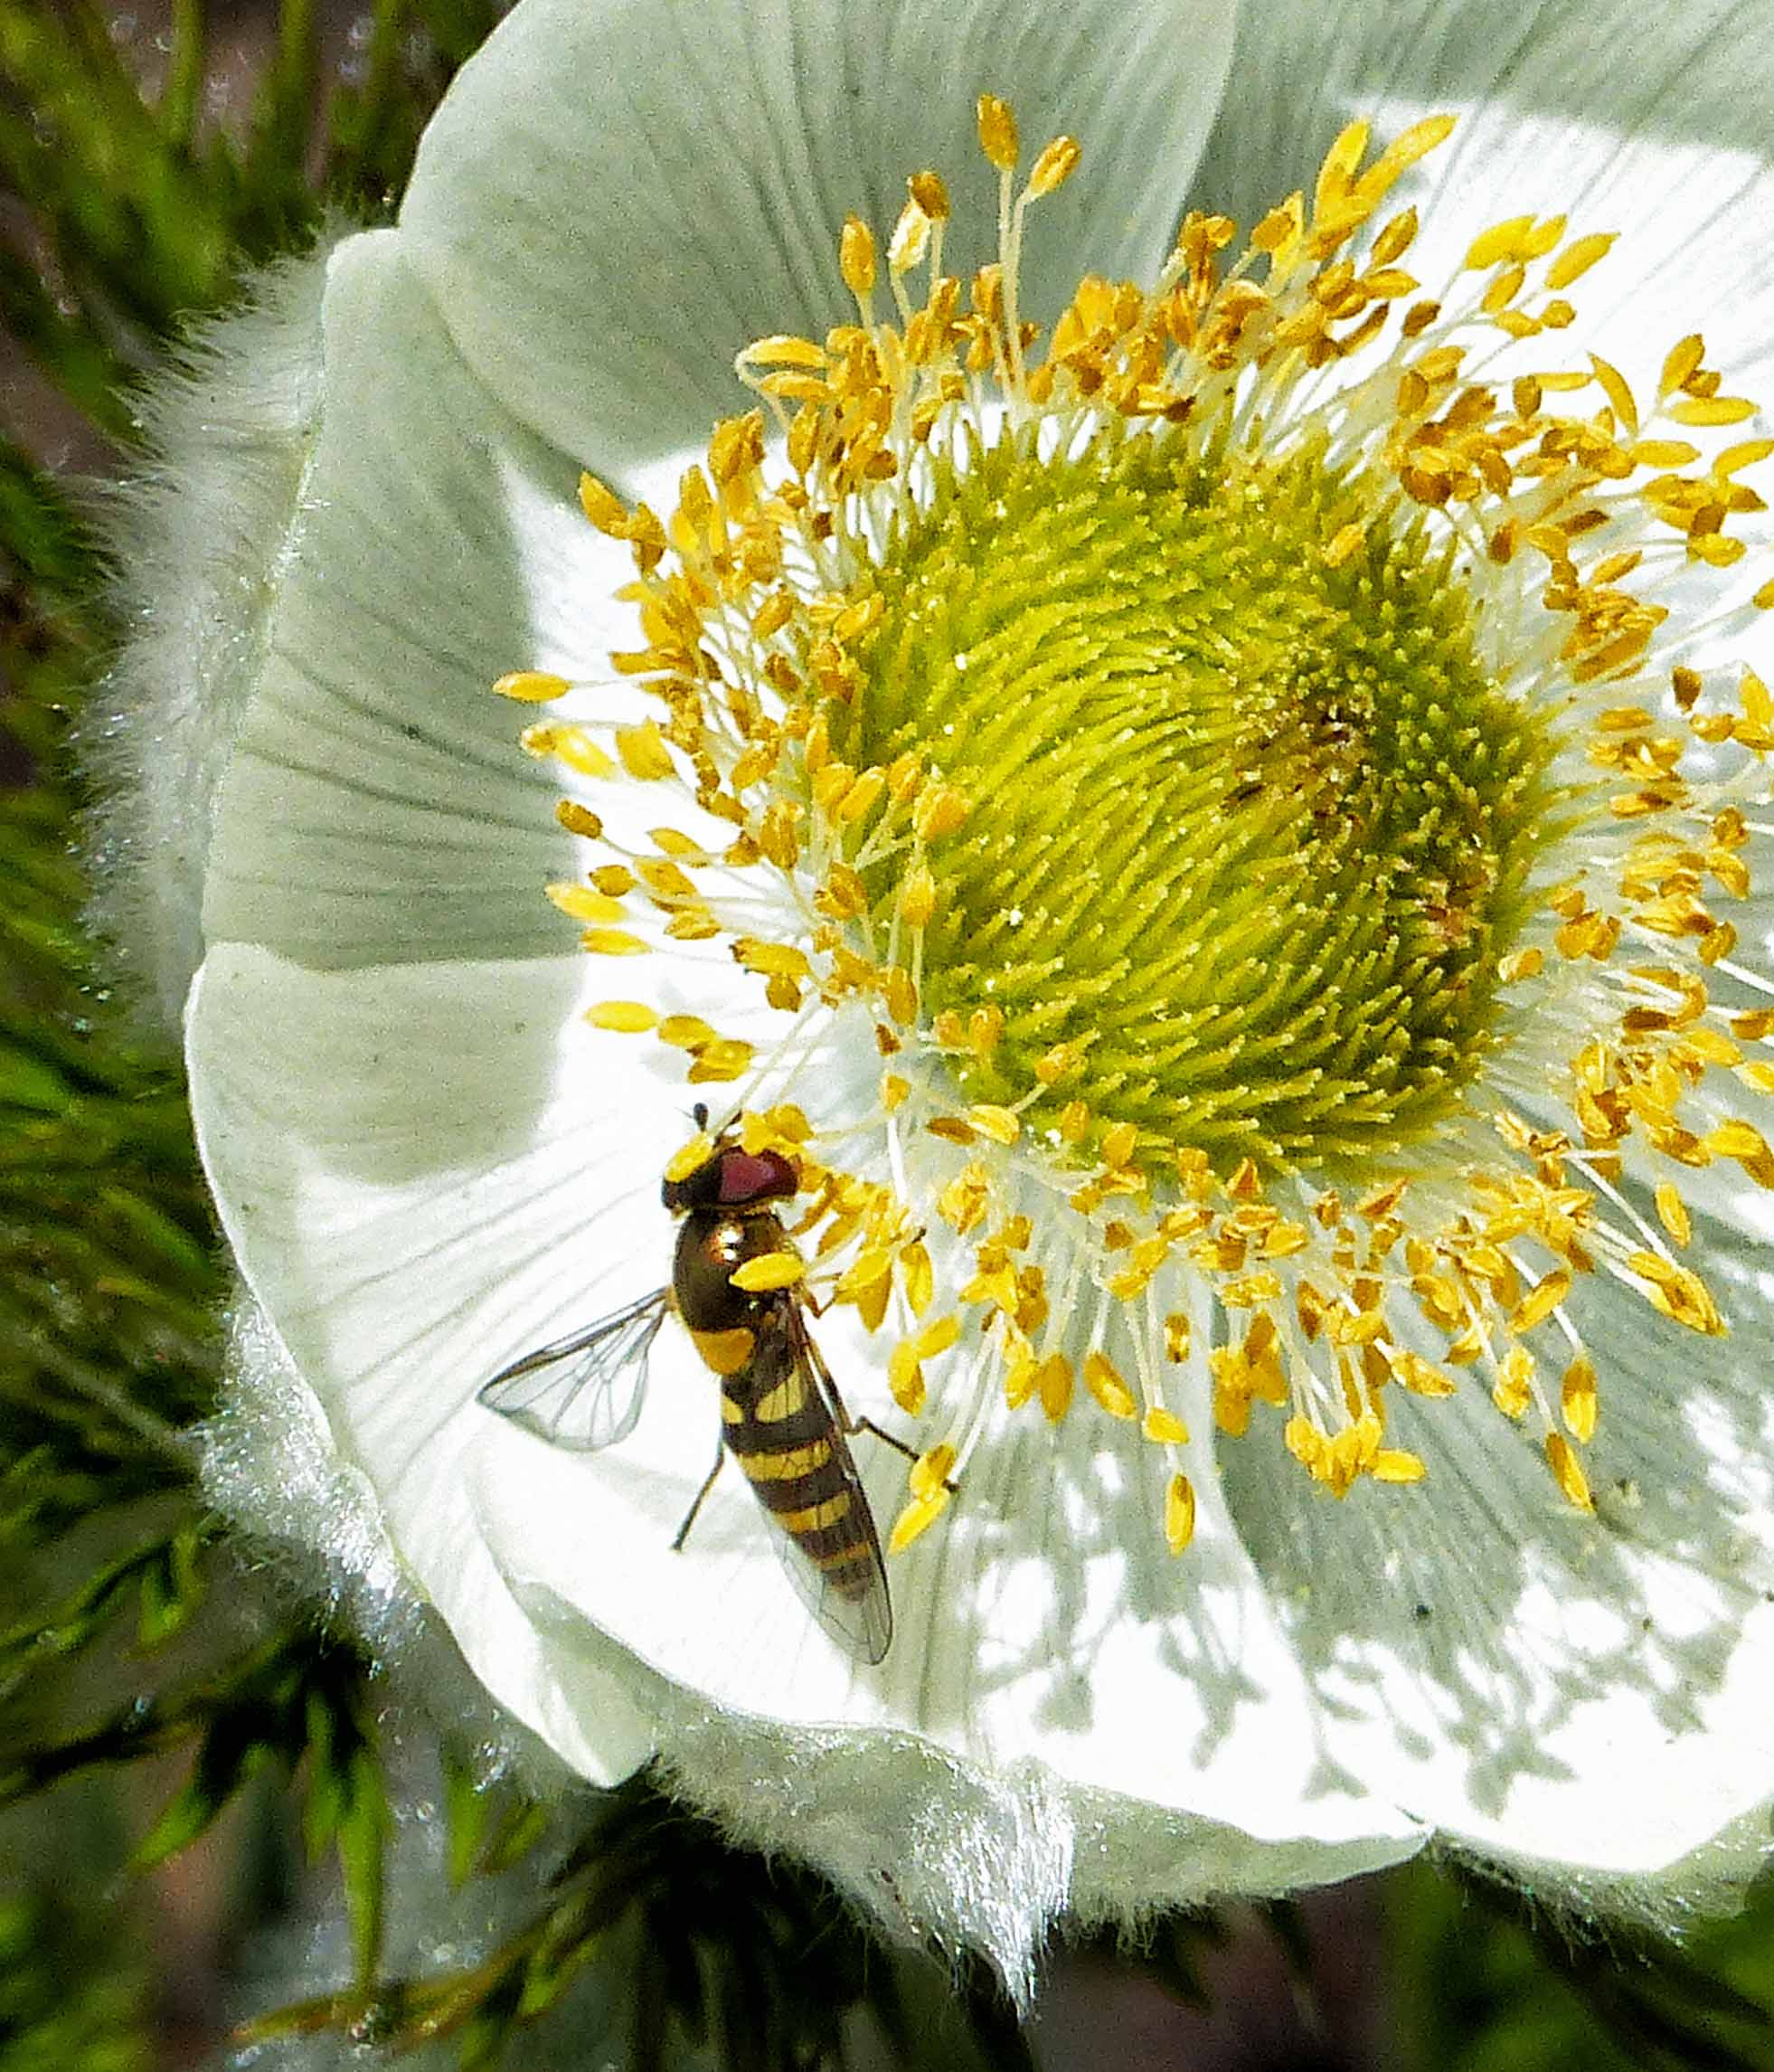 Striped fly on a large white flower